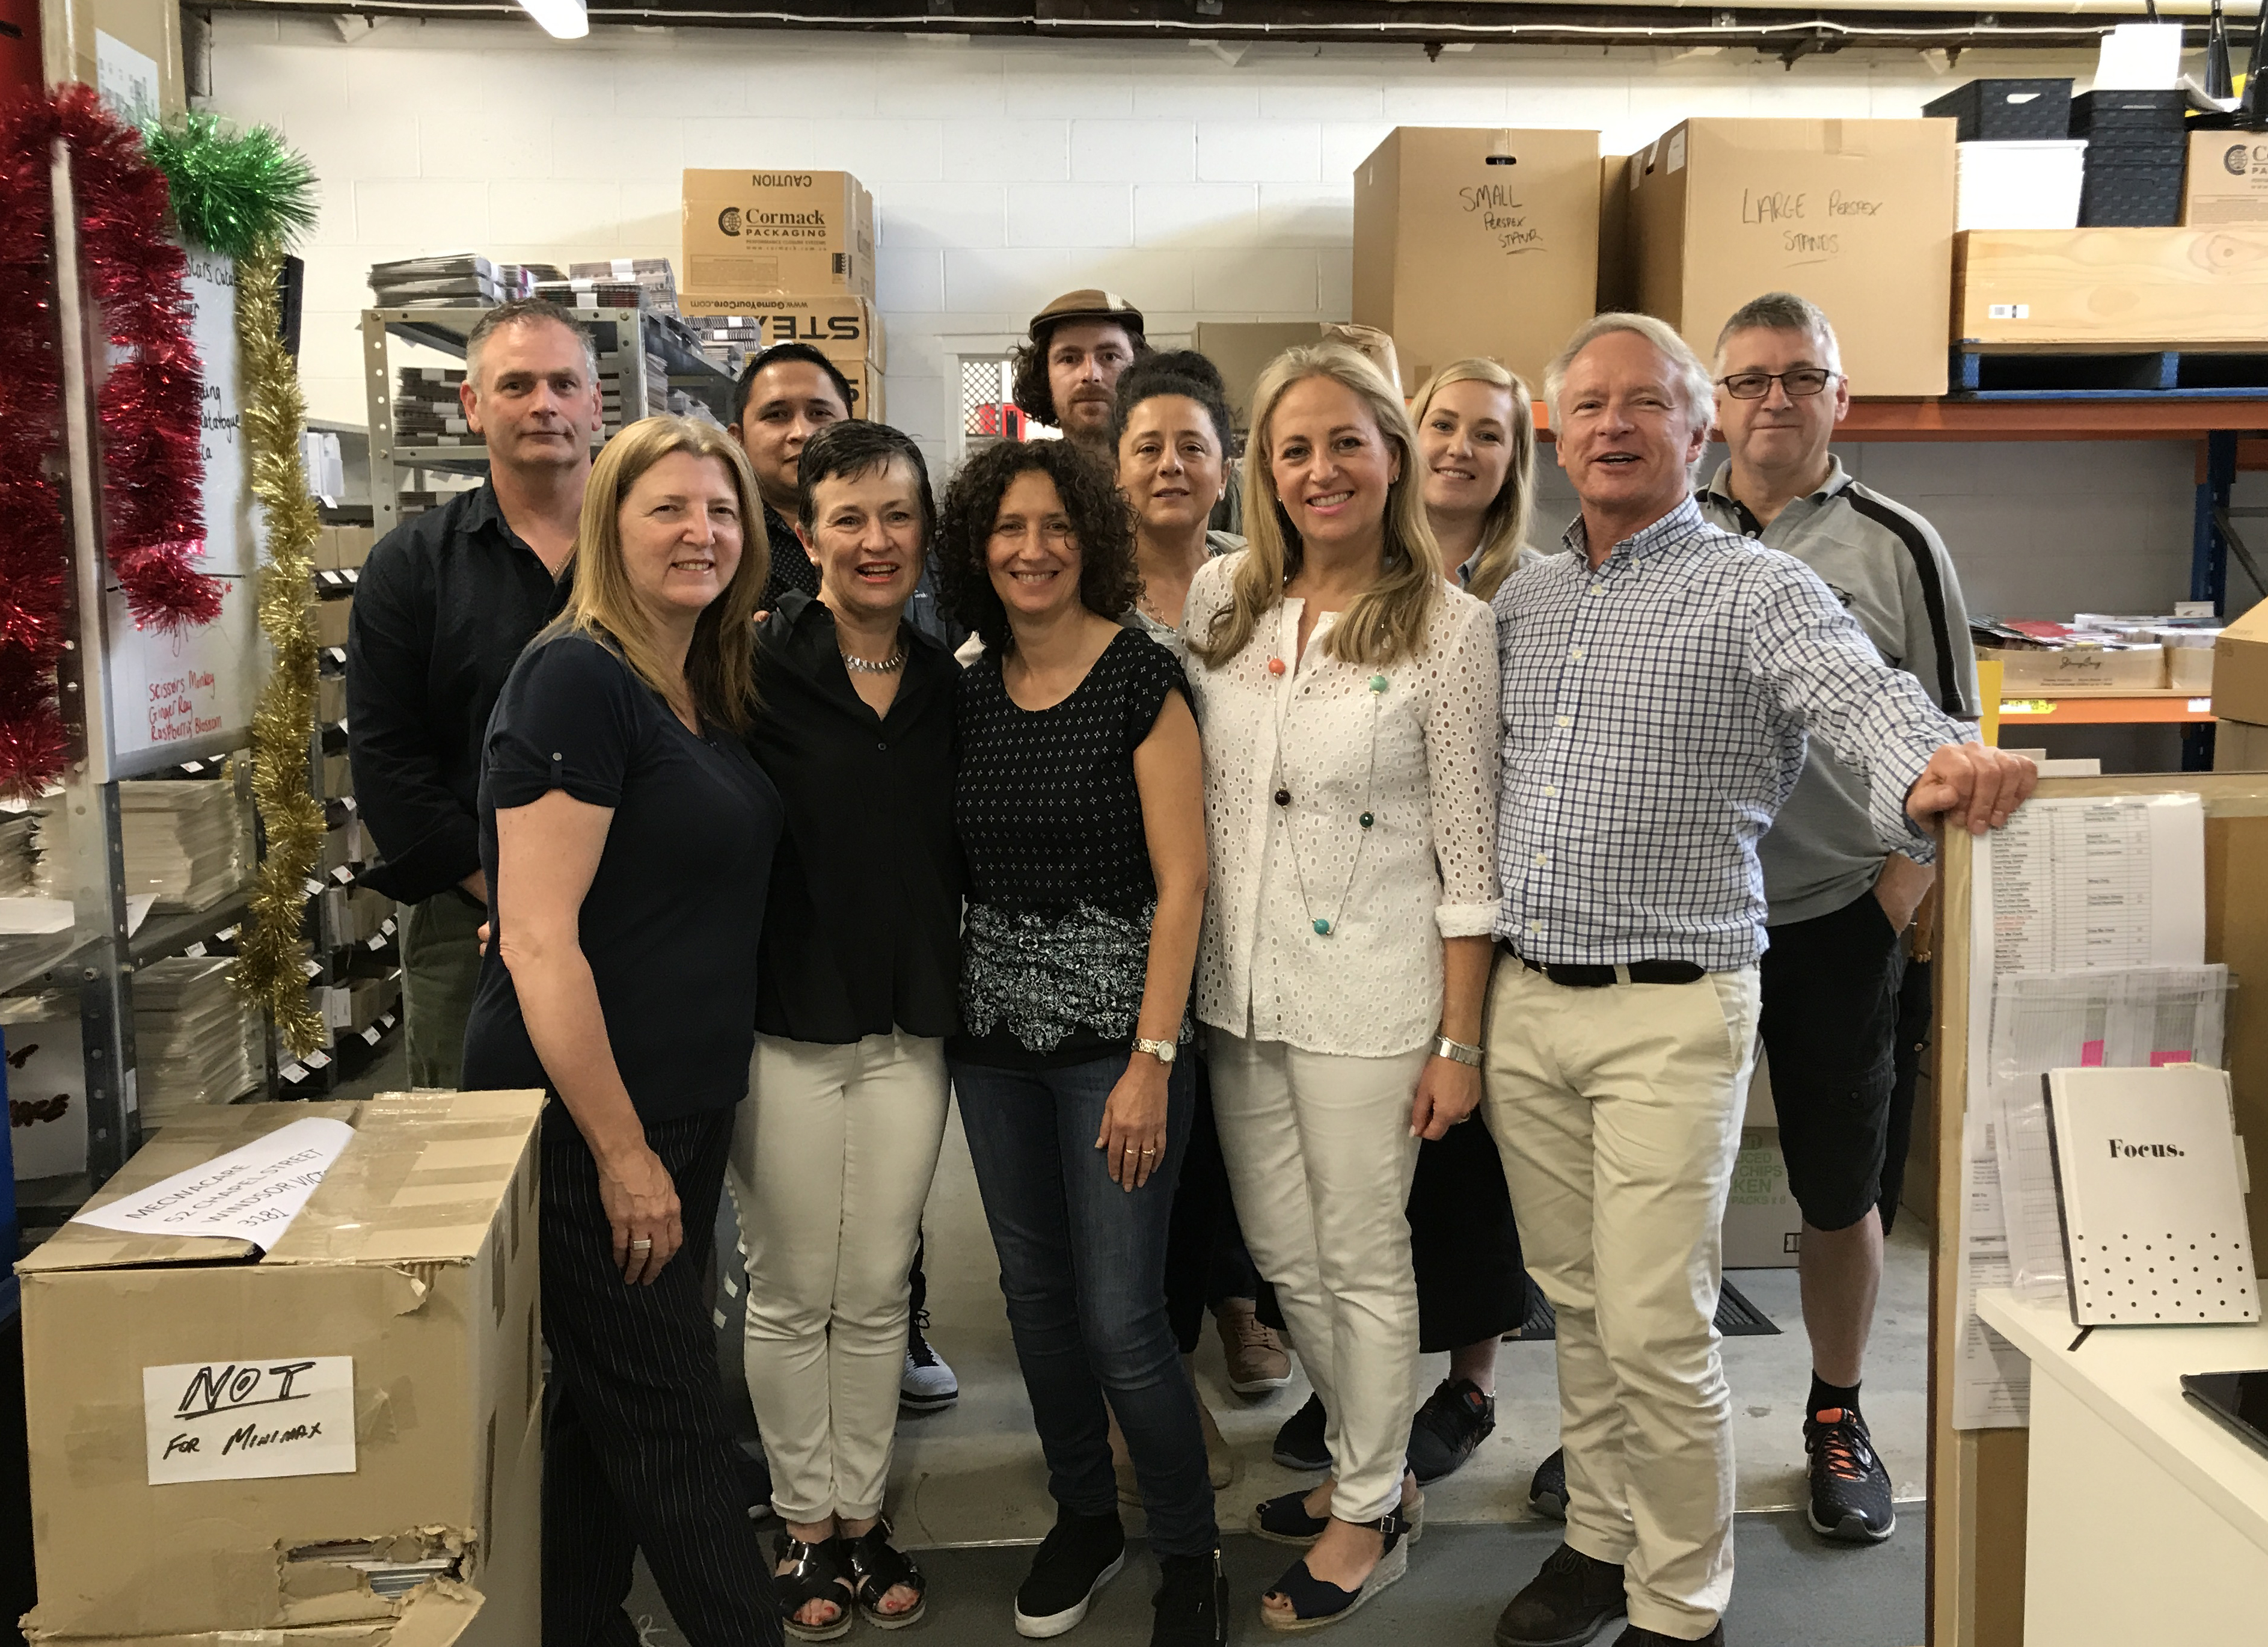 Above: Scarpa Imports' directors Mark and Sarah Kagan with the rest of the team in its HQ.